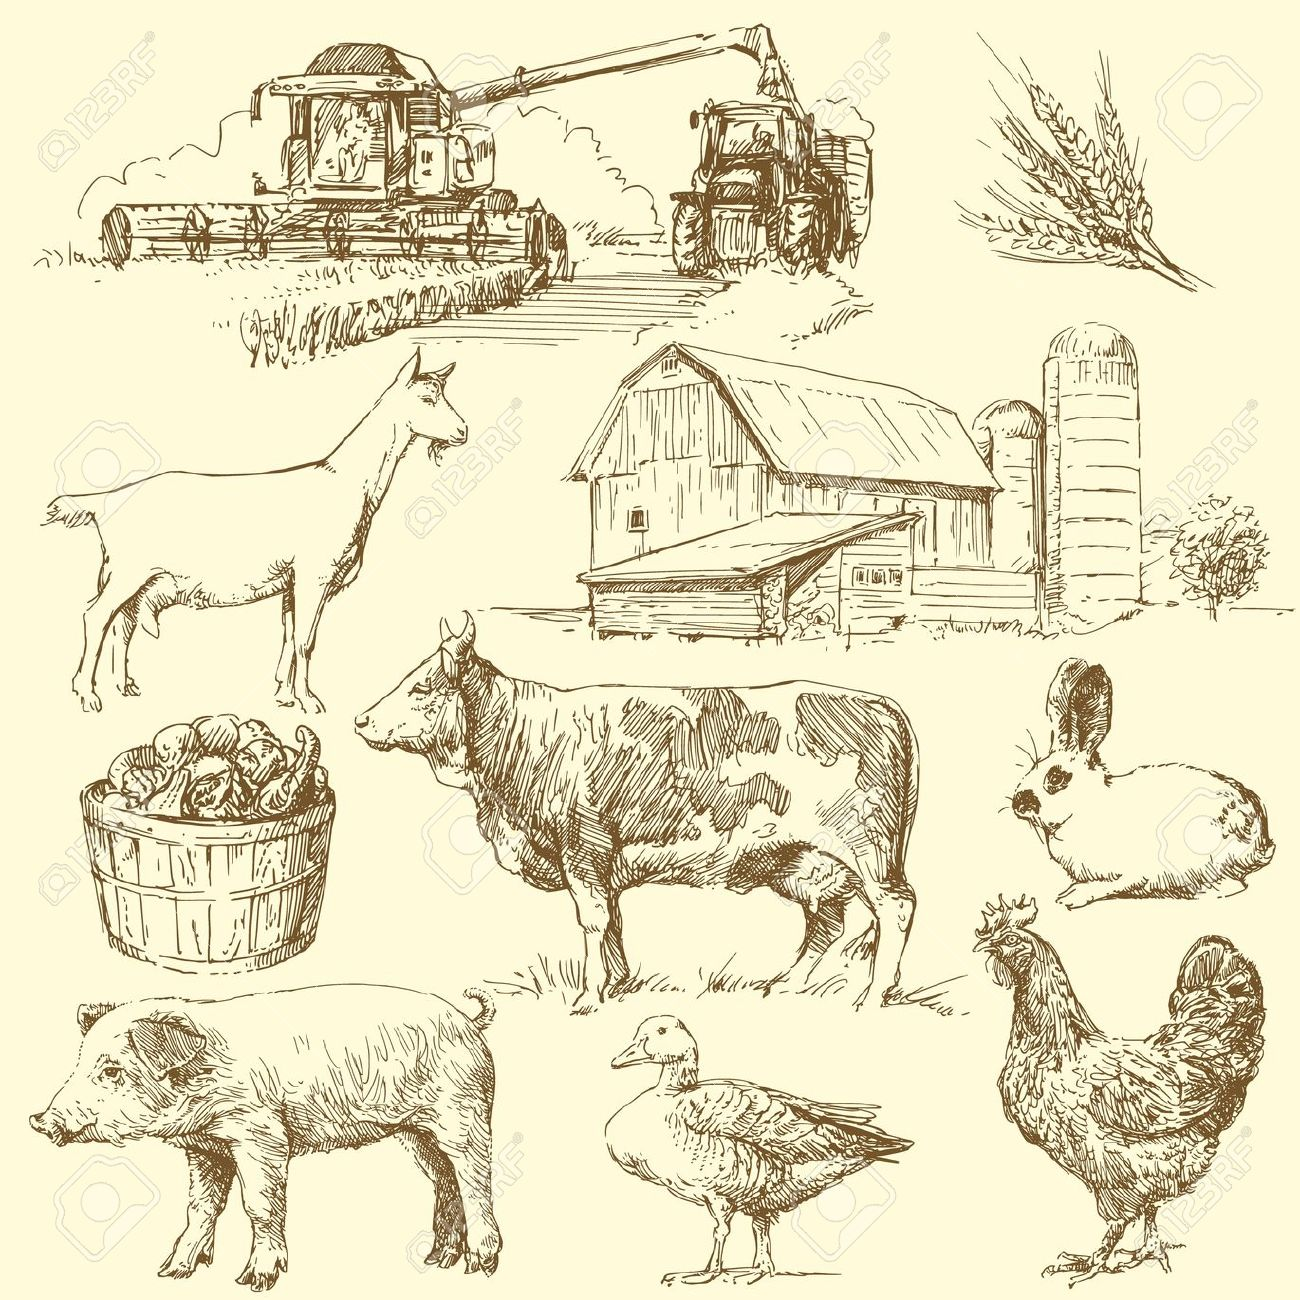 Vintage farm animal clipart.